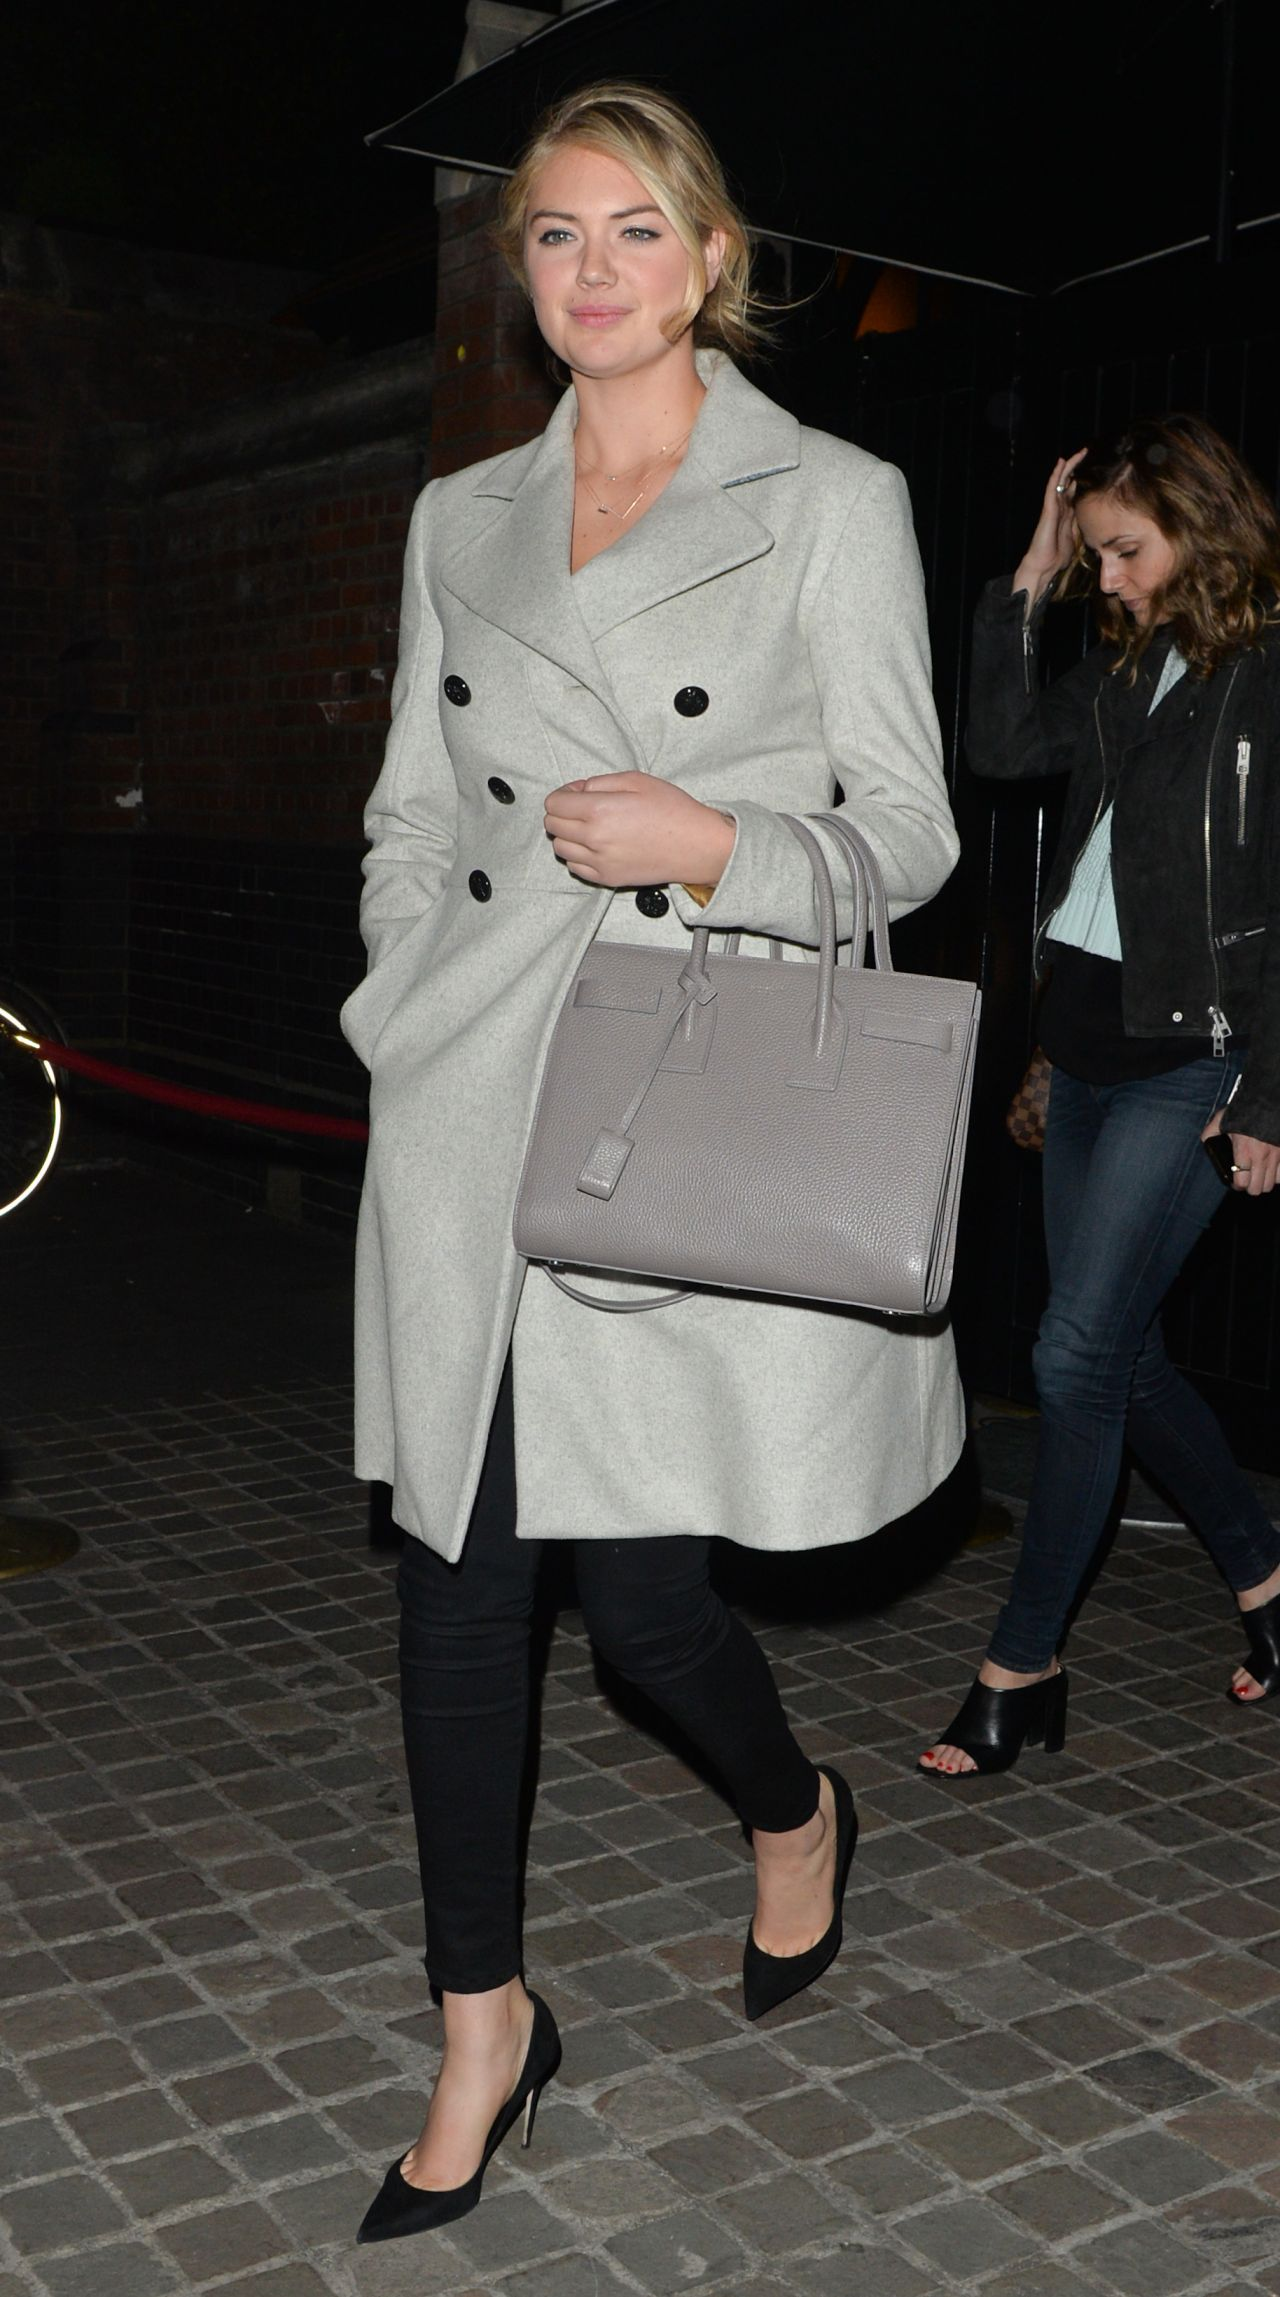 Kate Upton Night Out Style At The Chiltern Firehouse In London April 2015